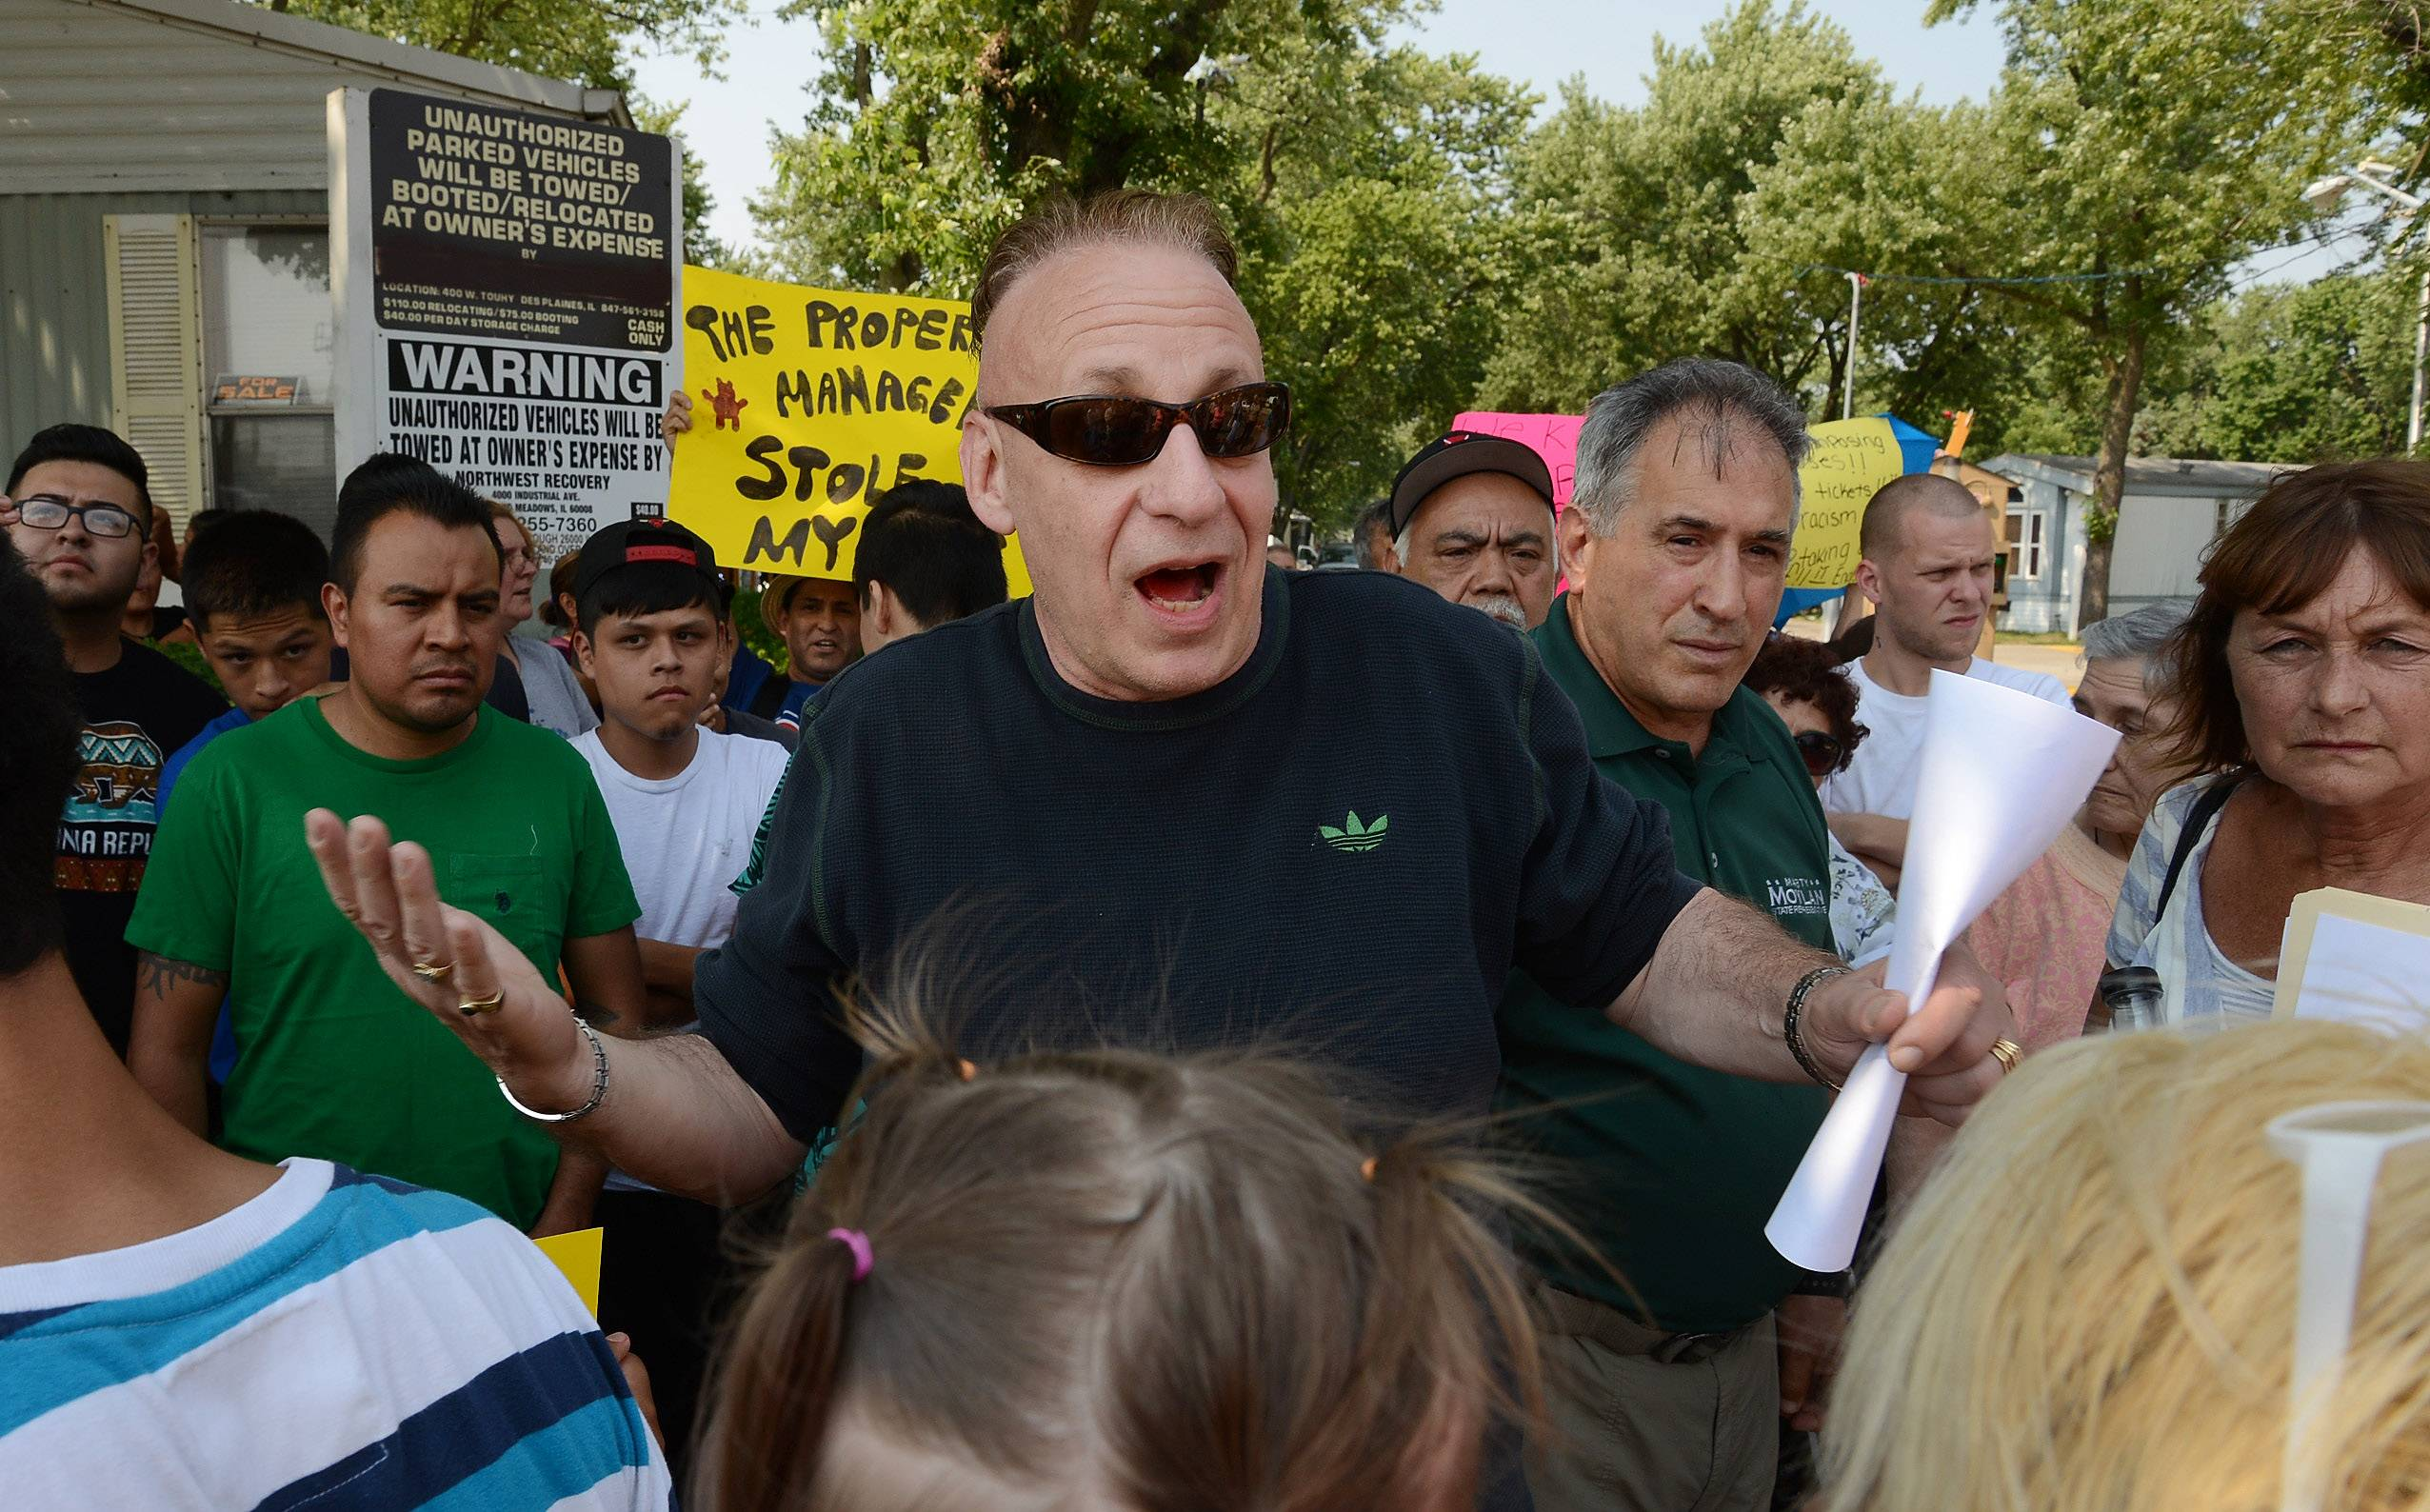 Homeowner/spokesman Stuart Bieber tries to calm angry residents of Blackhawk Estates, in Des Plaines, as they protest management's treatment of residents.